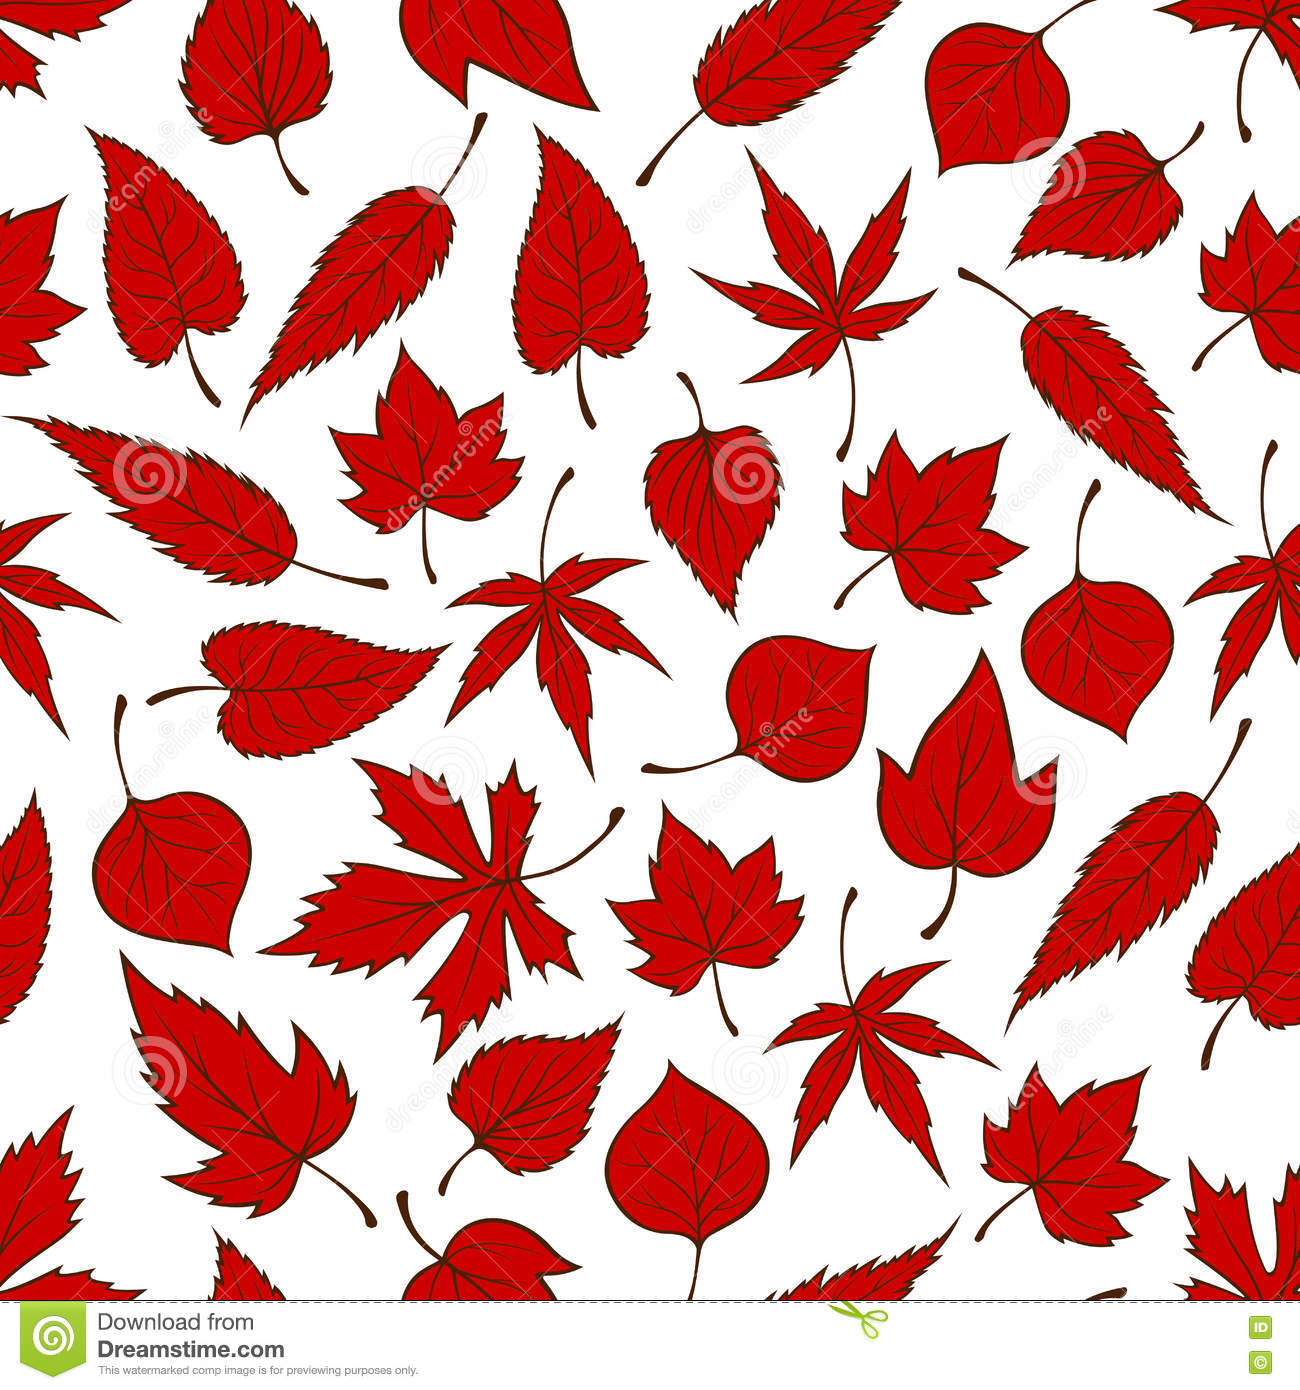 red leaves wallpaper pattern - photo #4